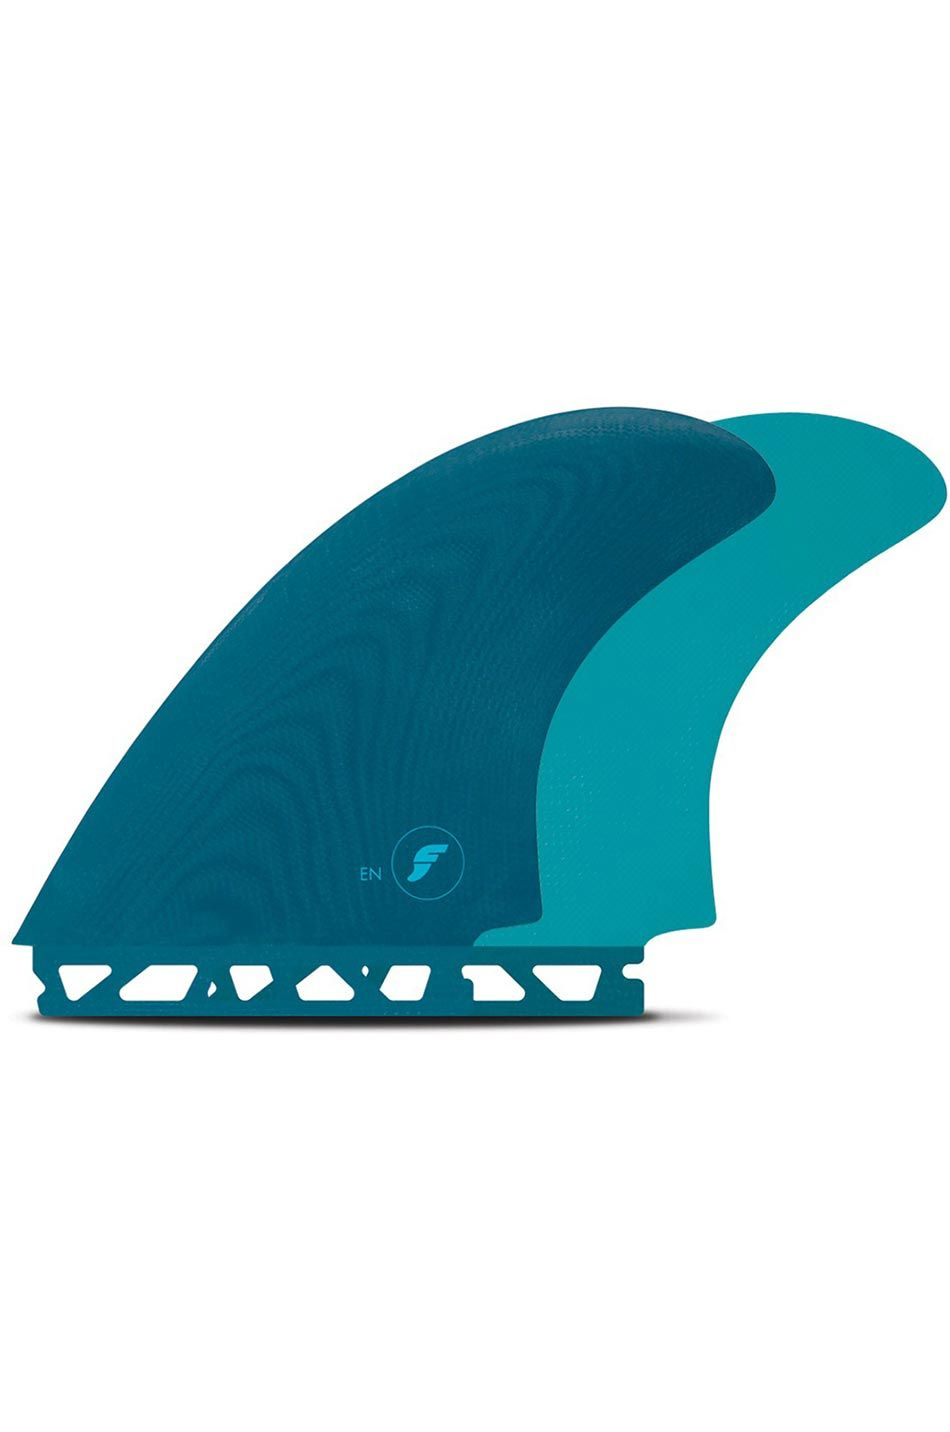 Quilha Future Fins EN TEAL Twin/Bonzer Futures Twin L